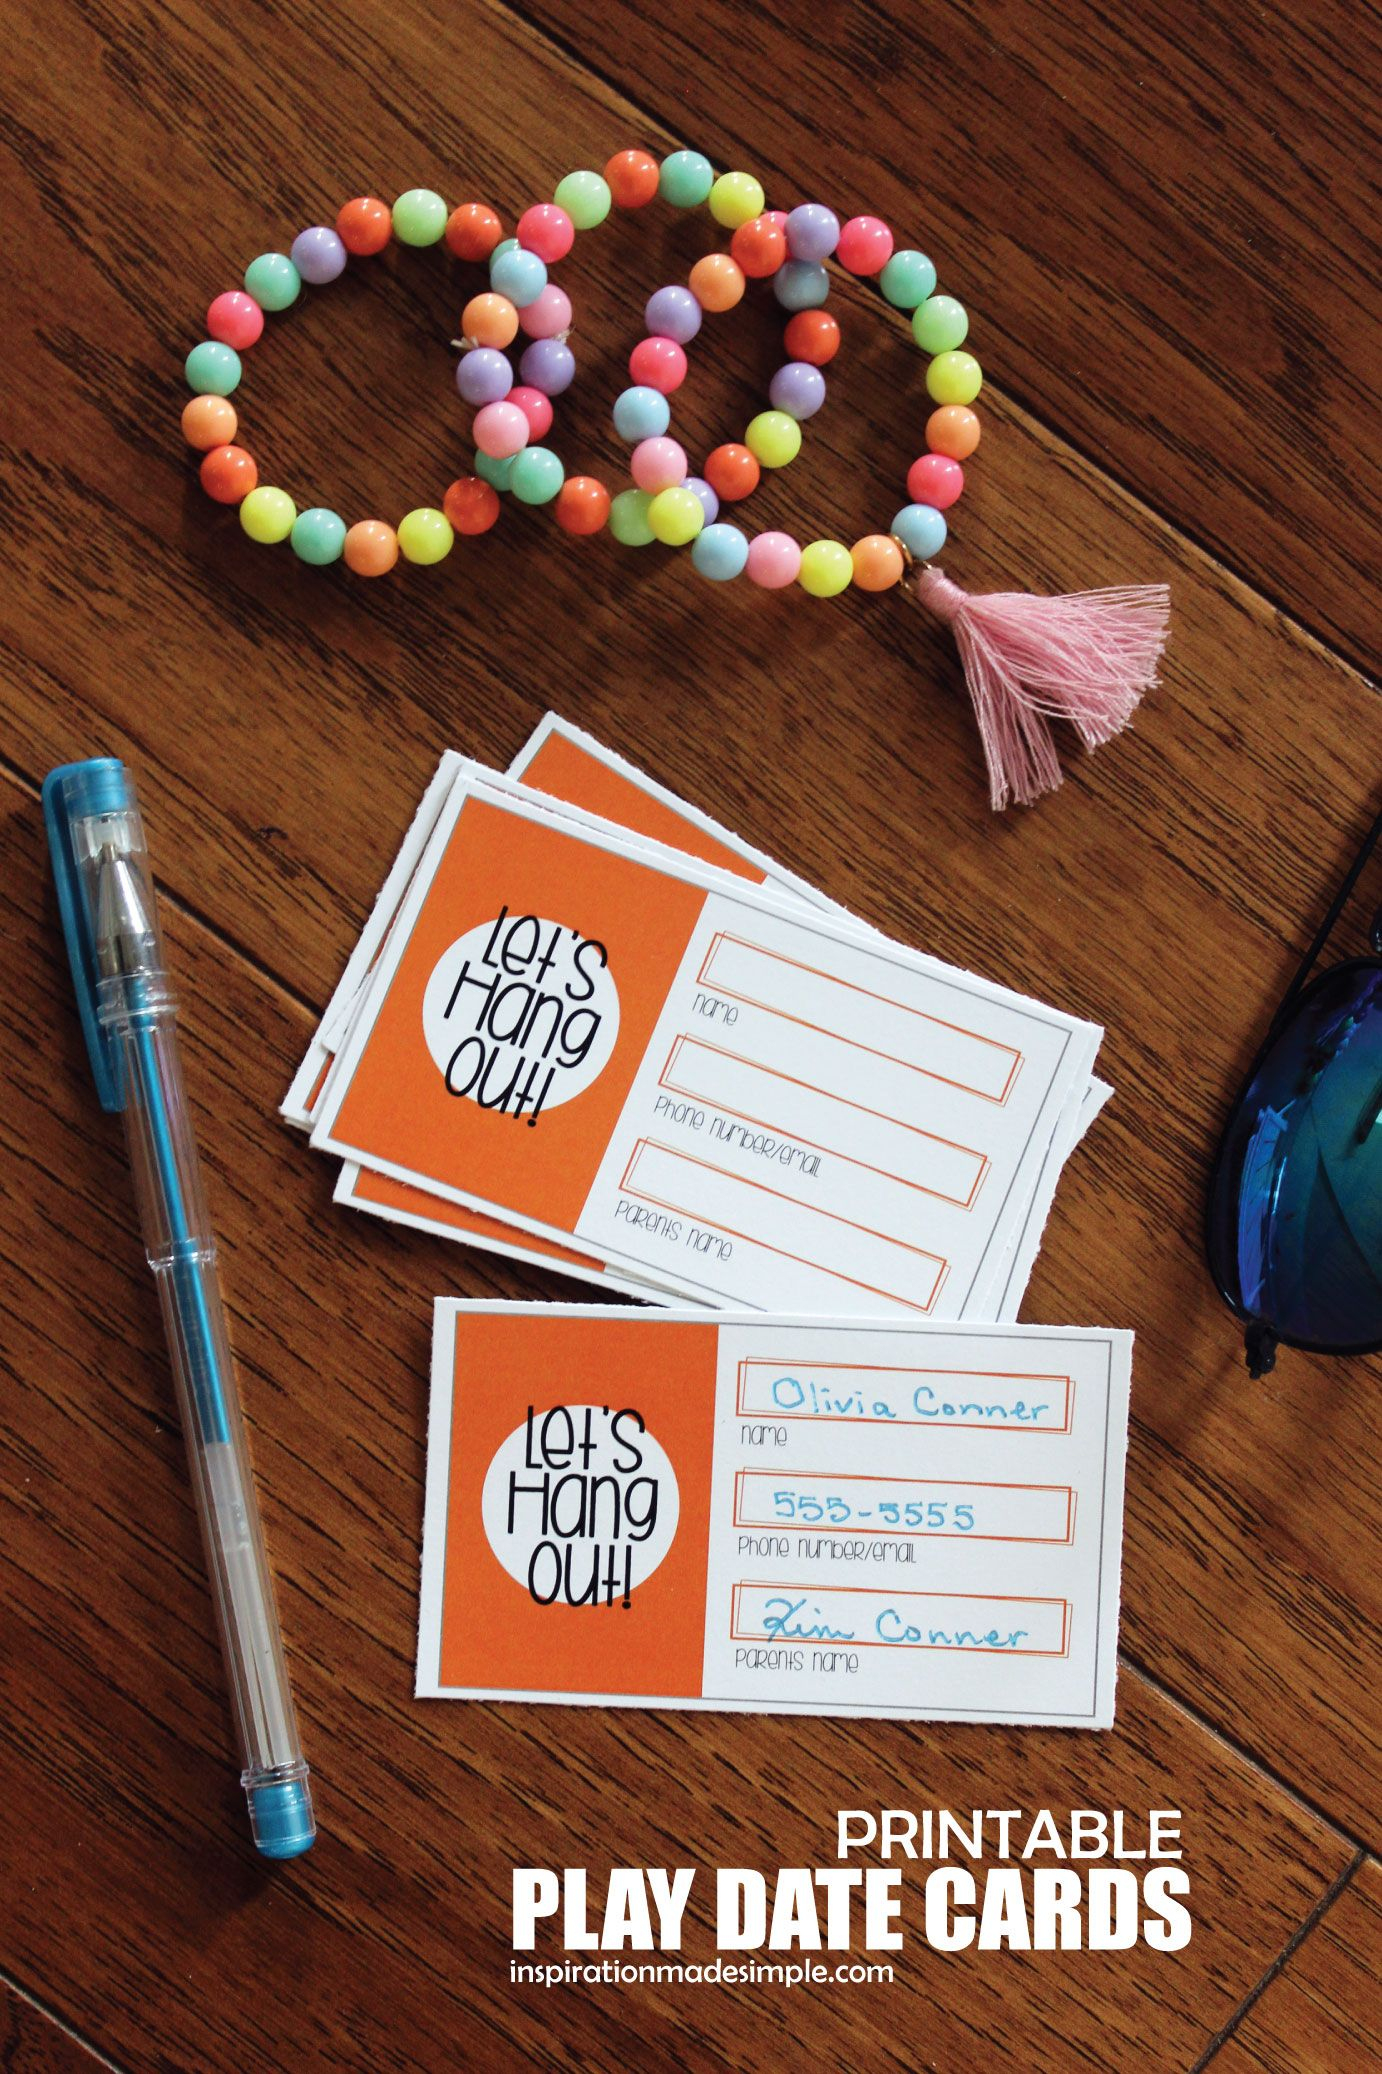 Printable Play Date Cards For Kids | Pinterest - Free Printable Play Date Cards